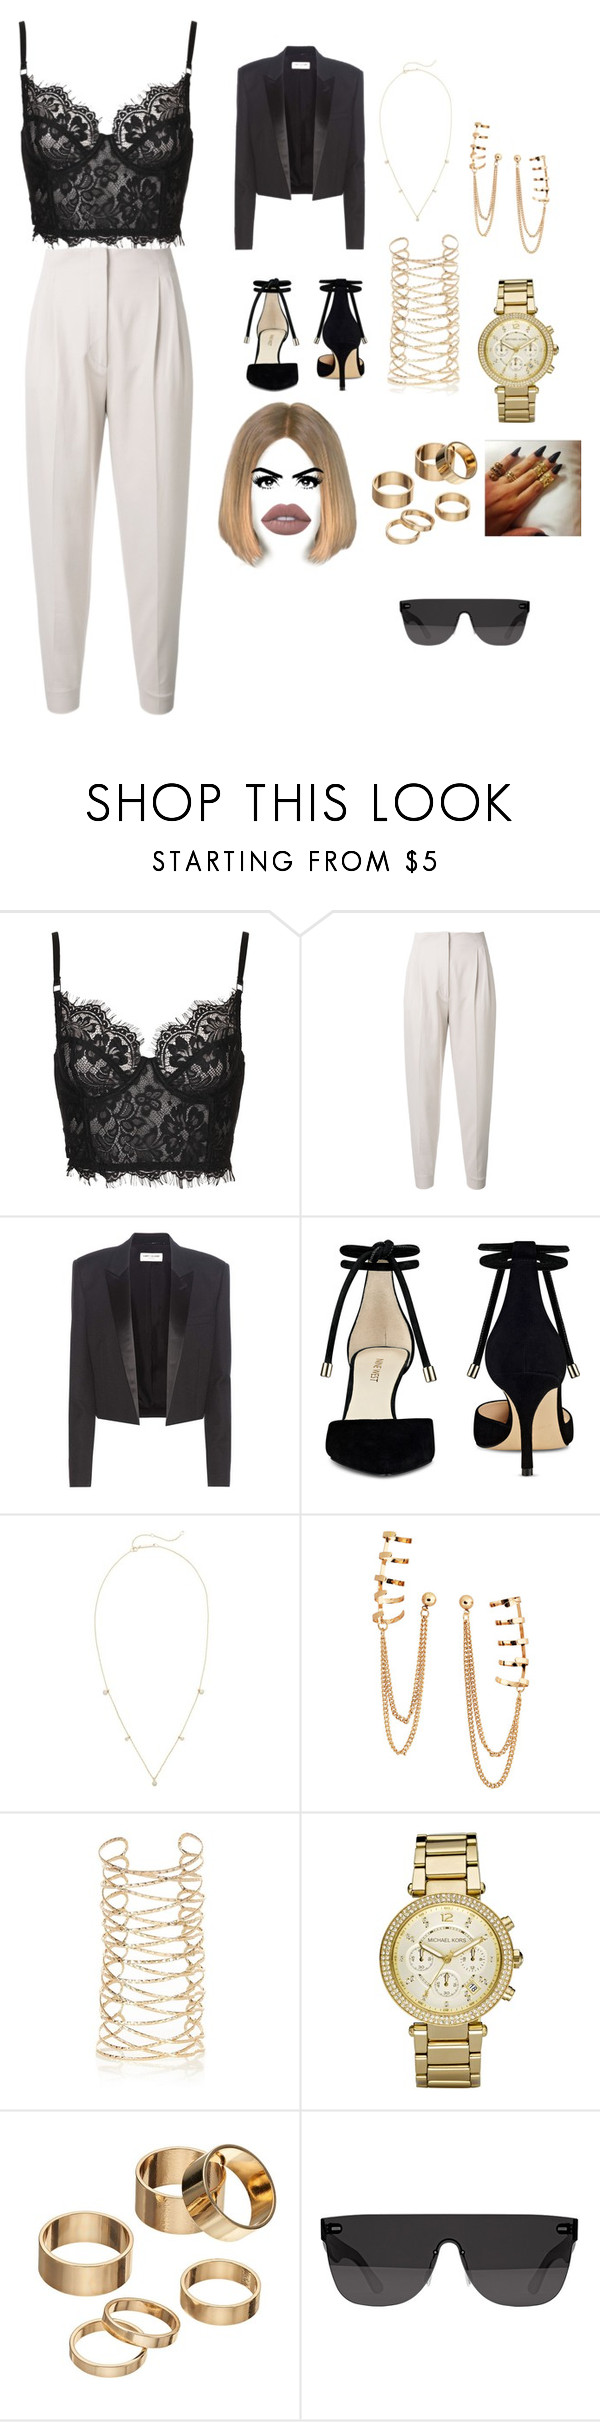 """""""S.A.L.T."""" by mariamxismail ❤ liked on Polyvore featuring MaxMara, Yves Saint Laurent, Nine West, ZoÃ« Chicco, H&M, River Island, Michael Kors, Apt. 9, RetroSuperFuture and Tom Ford"""